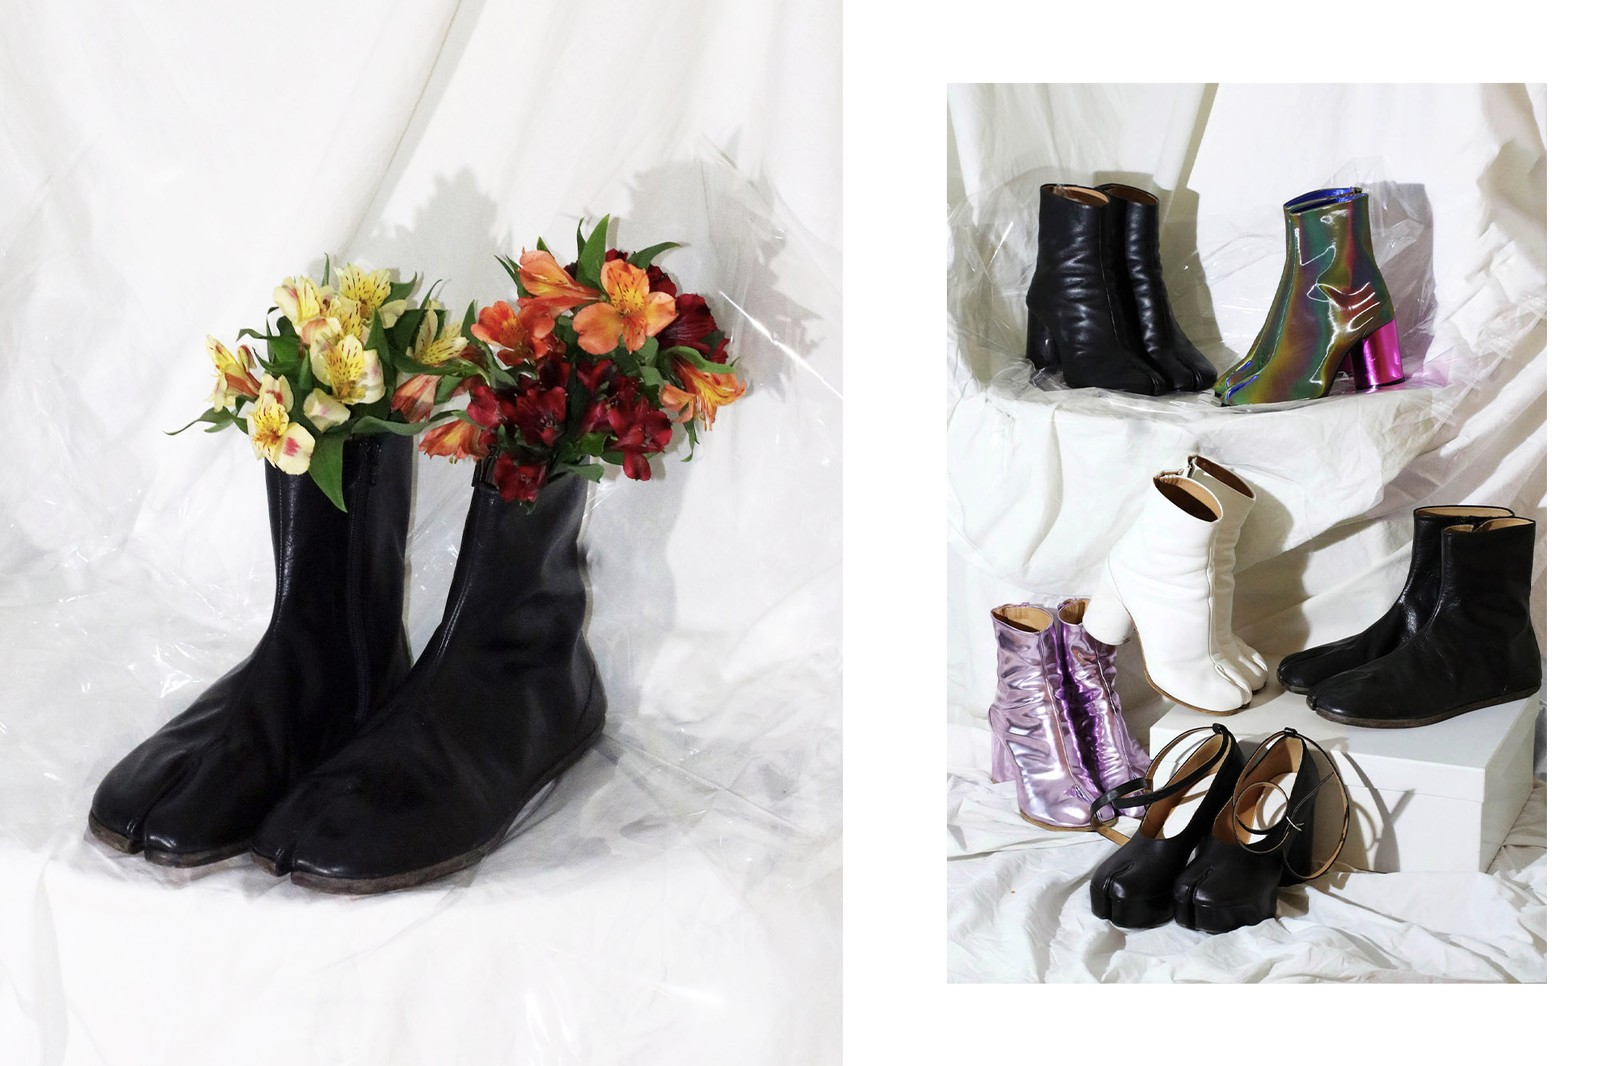 Maison Margiela Martin Margiela Tabi Boot History Editorial Shoot Silhouettes Fashion Shoes